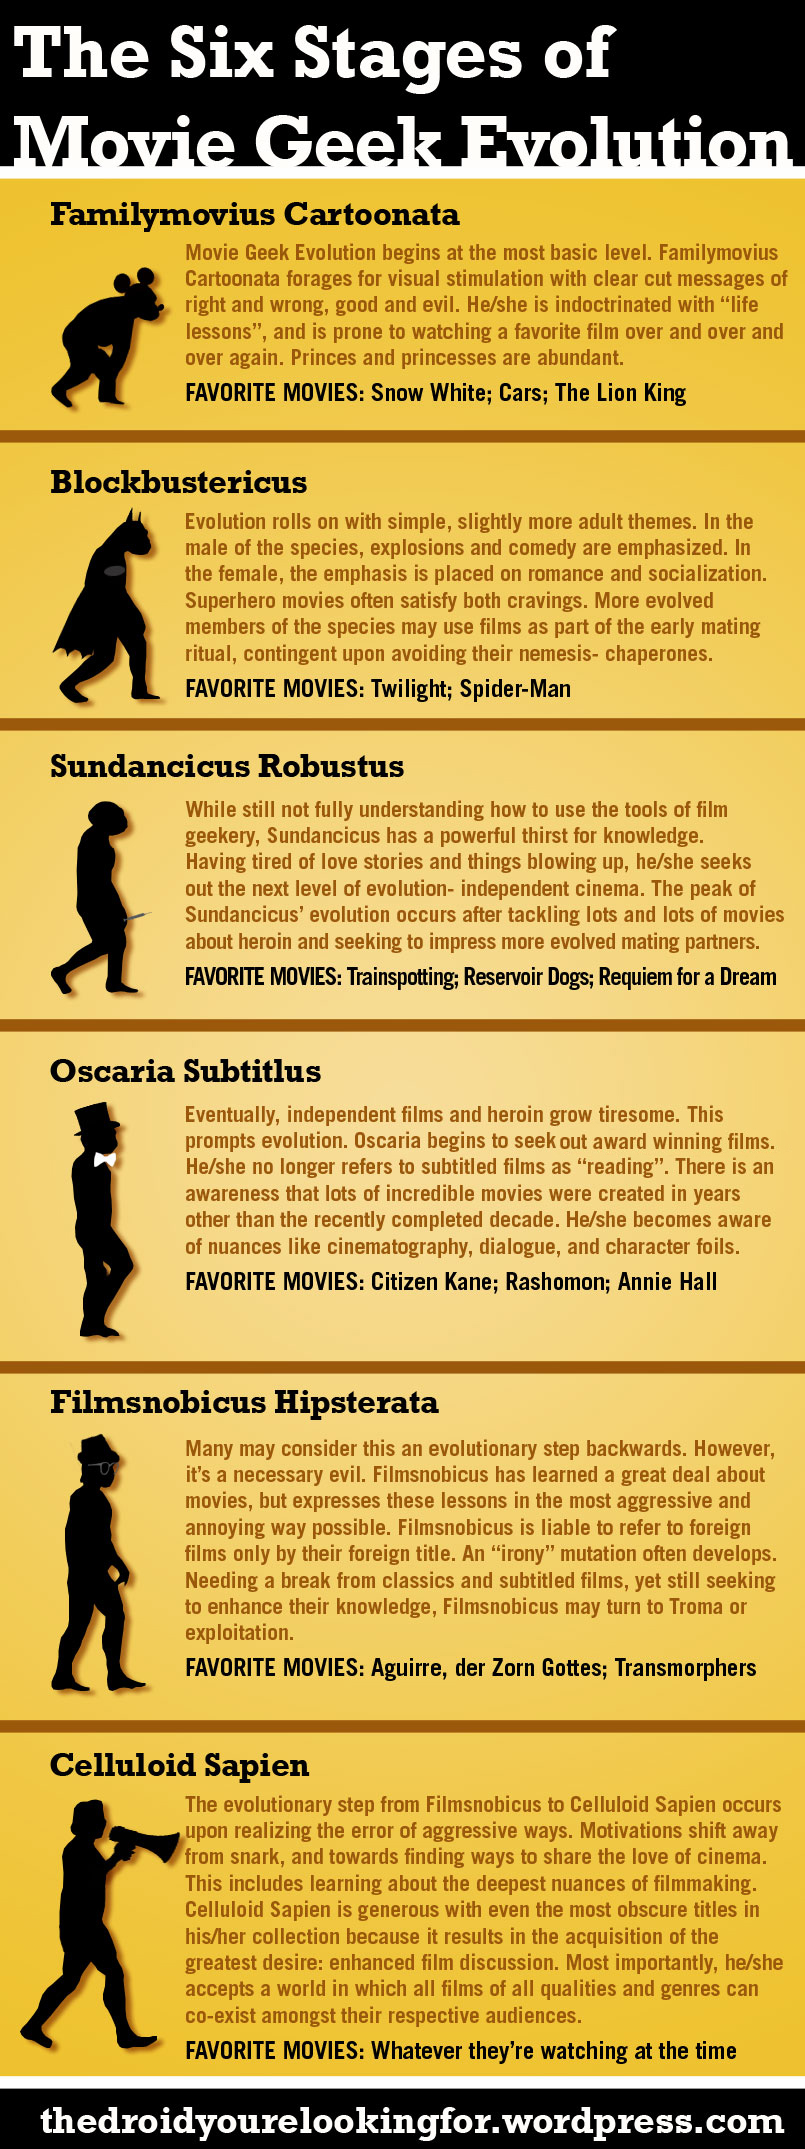 The Six Stages of Movie Geek Evolution |